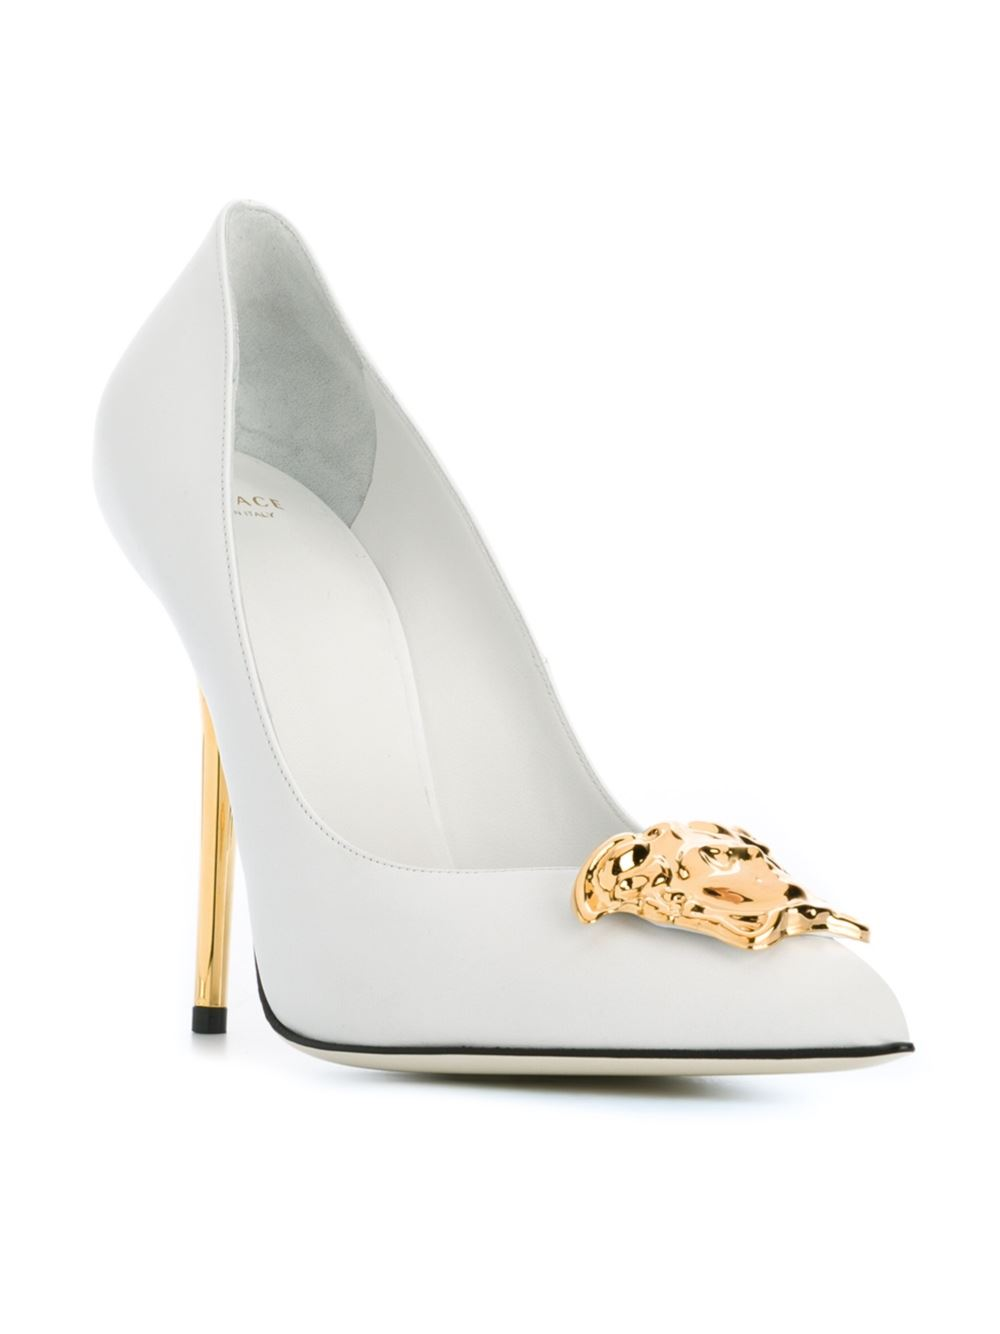 3663d9c77337 Versace Medusa Pumps - Elite - Farfetch.com